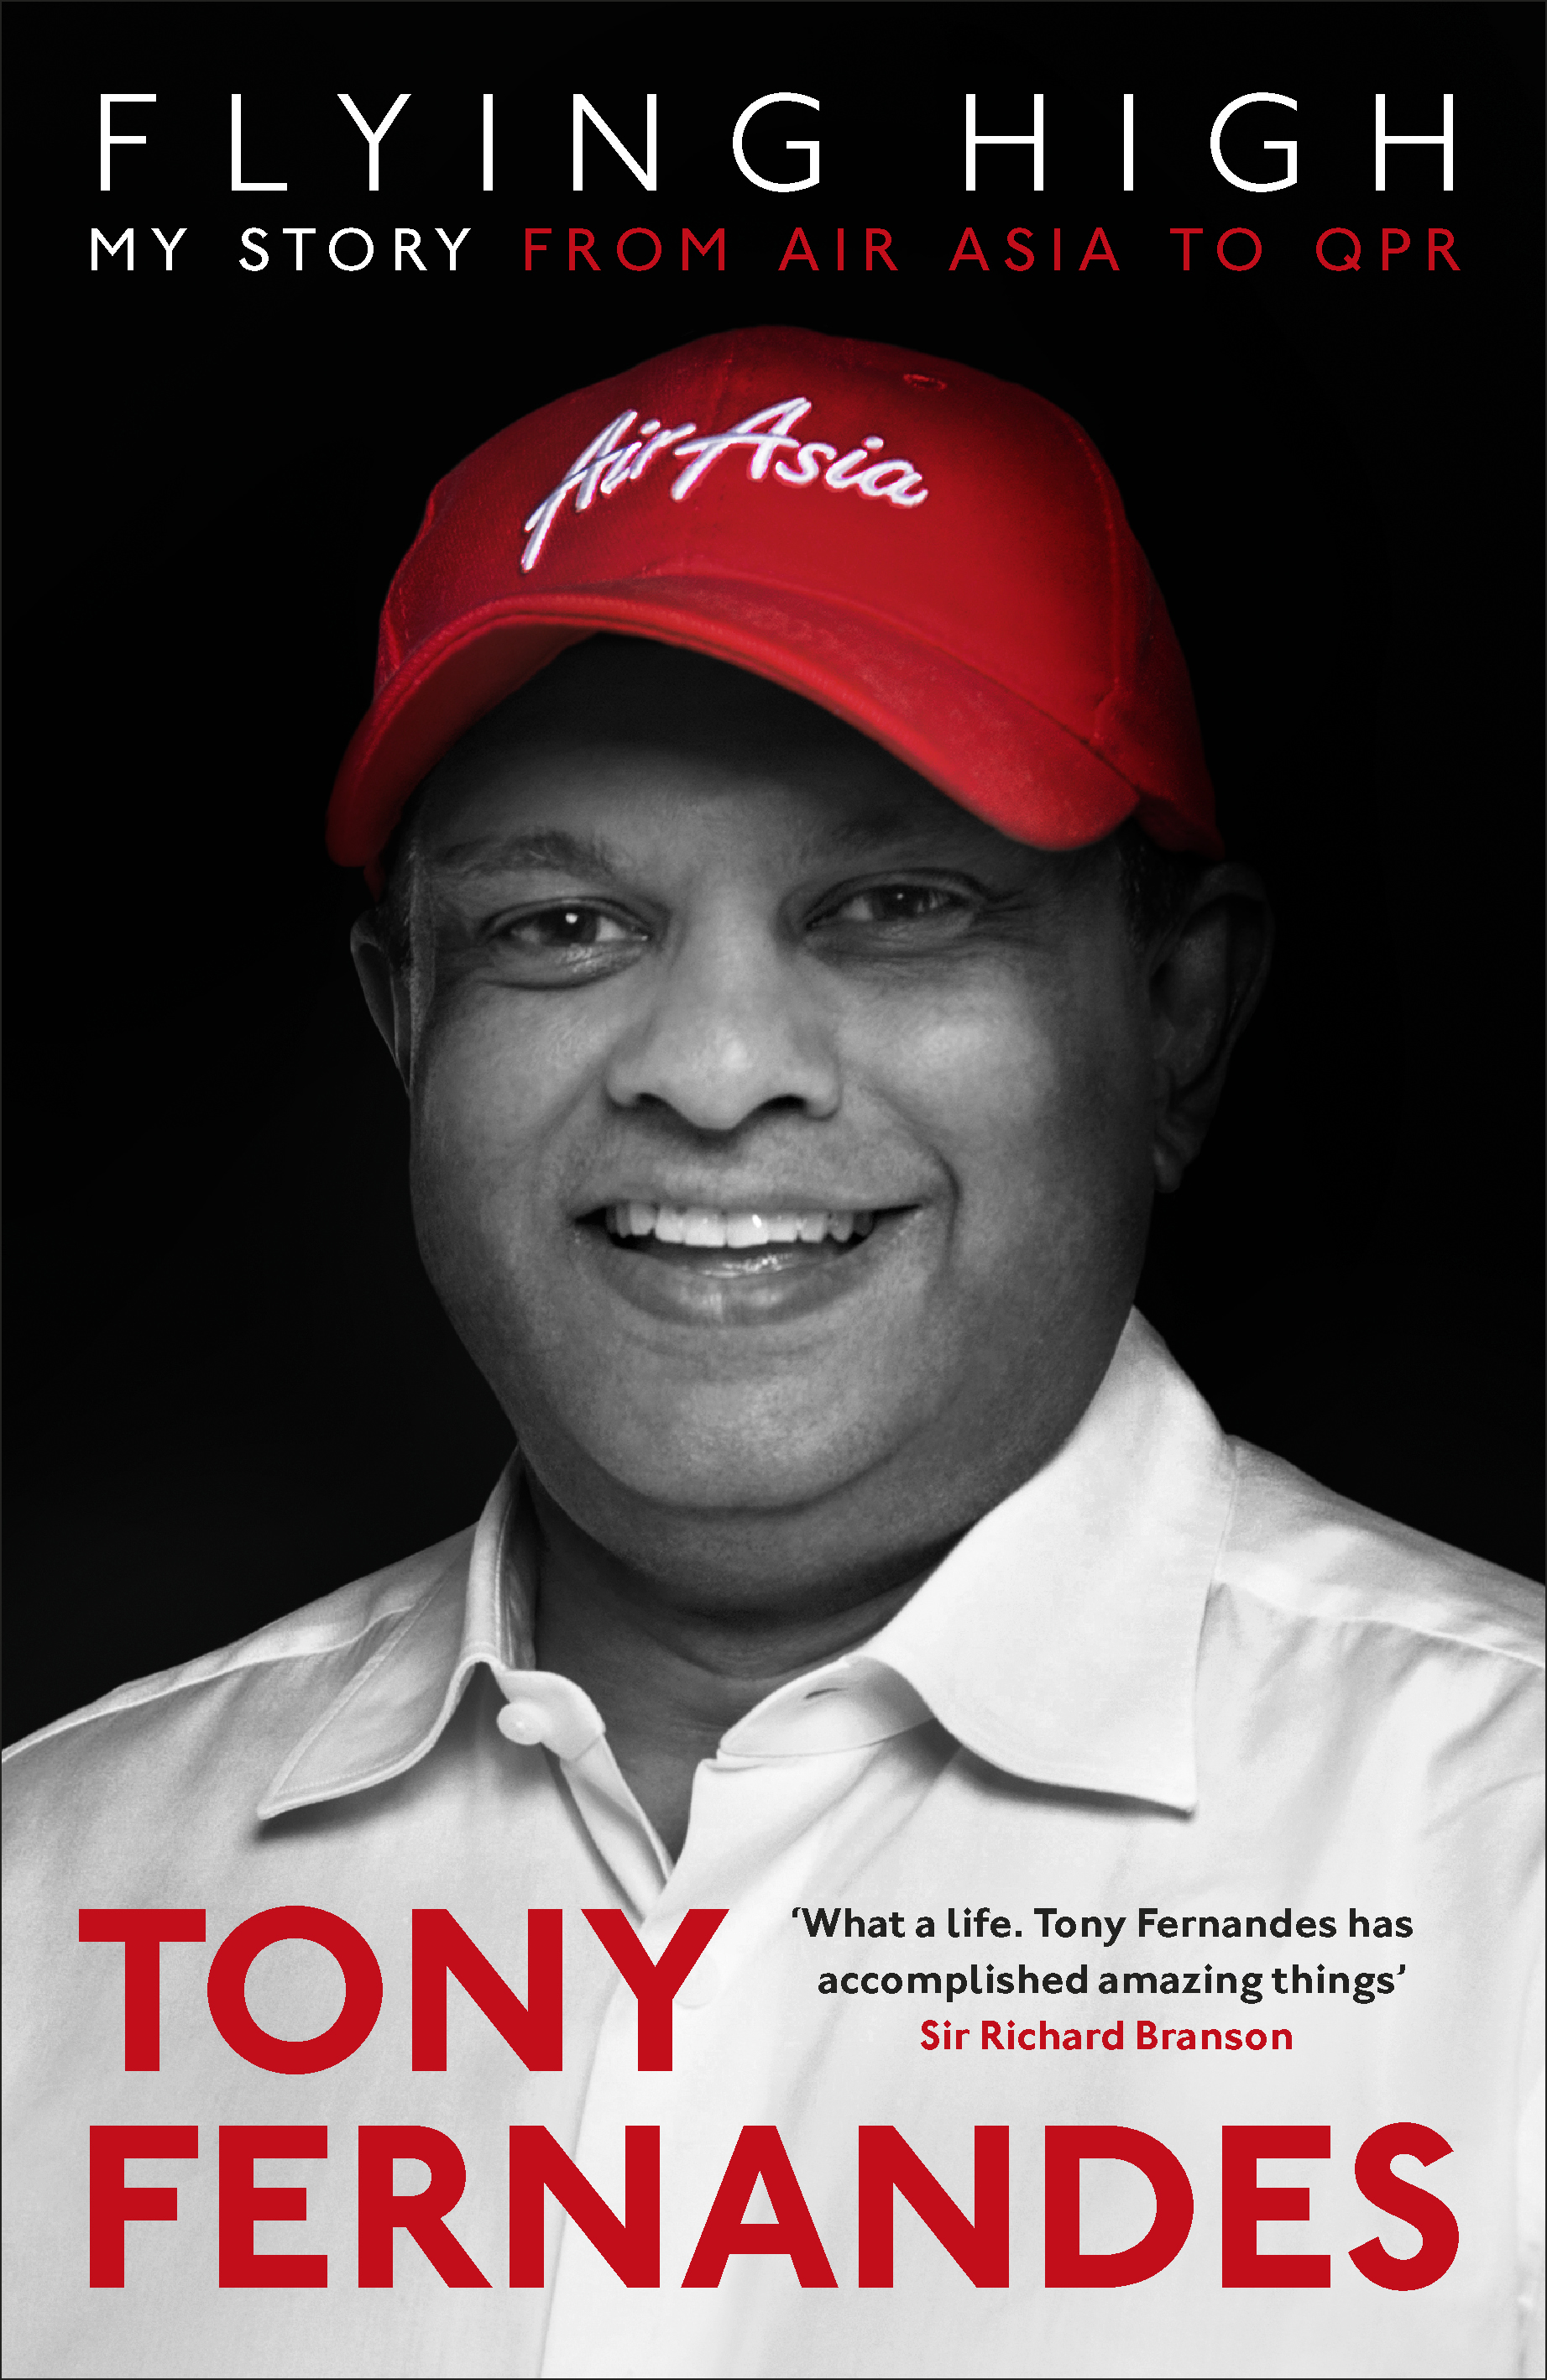 Flying High/Tony Fernandes